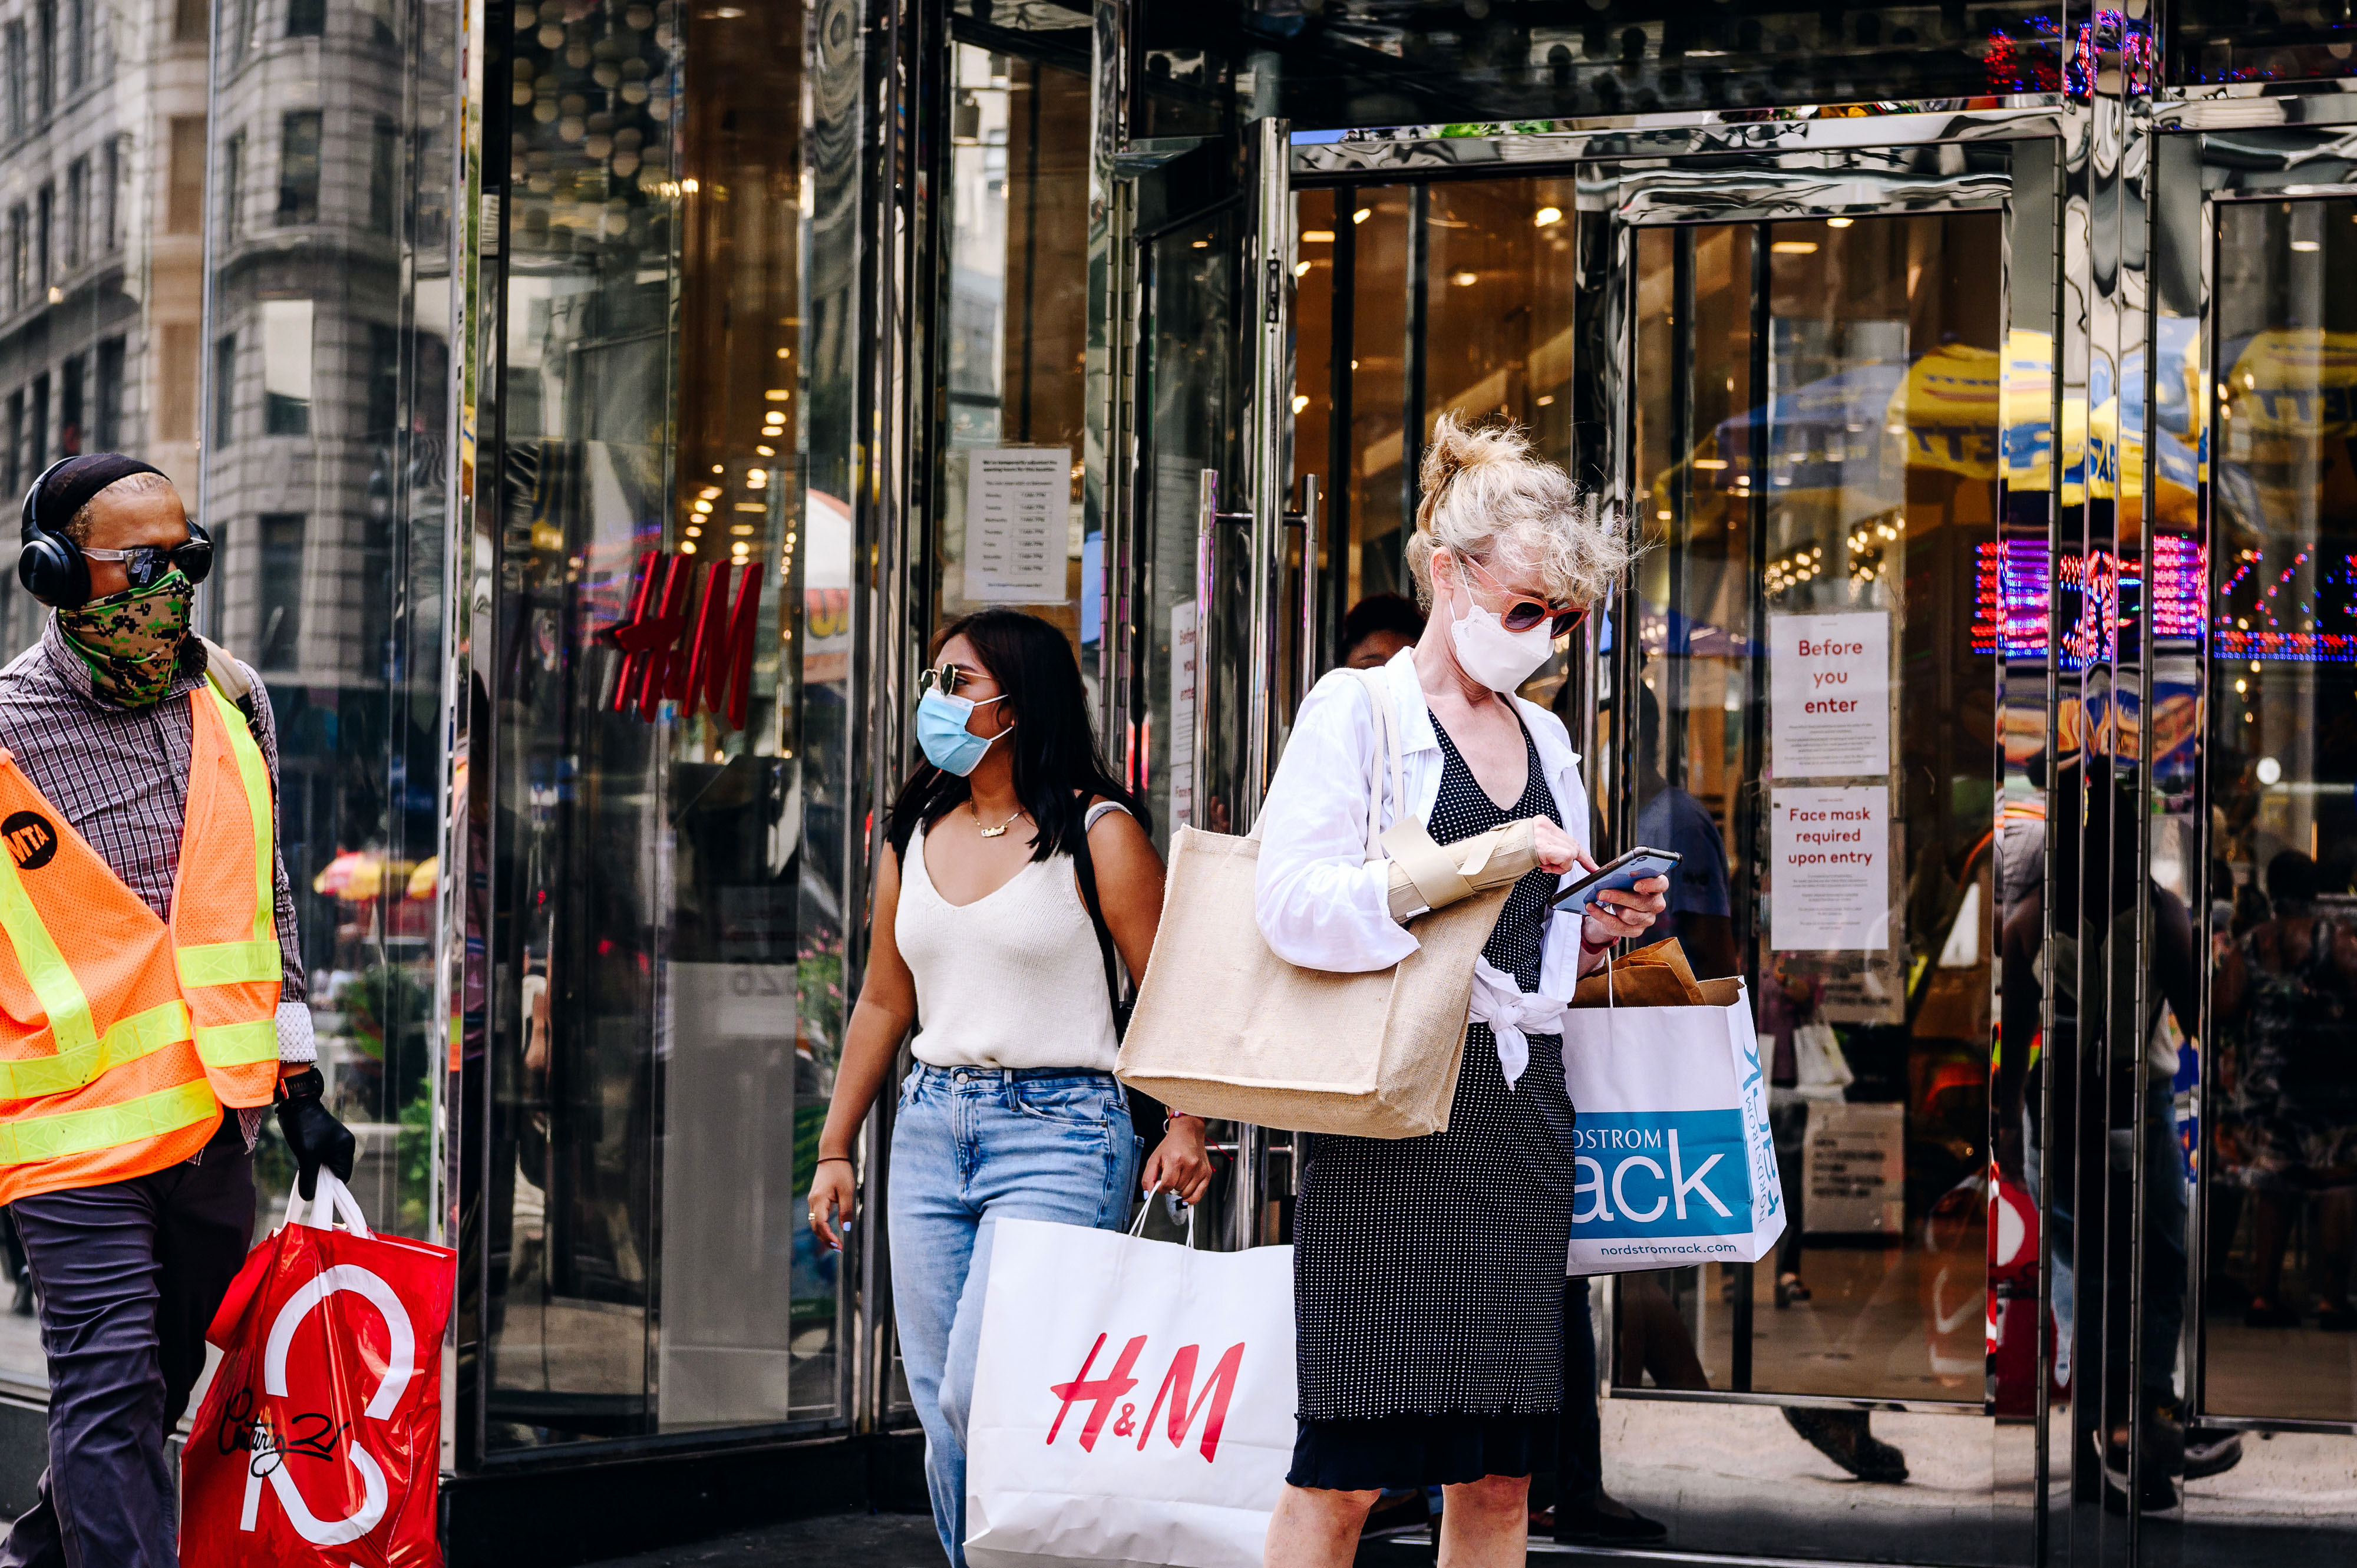 People shop in the Herald Square area of New York City on August 6.